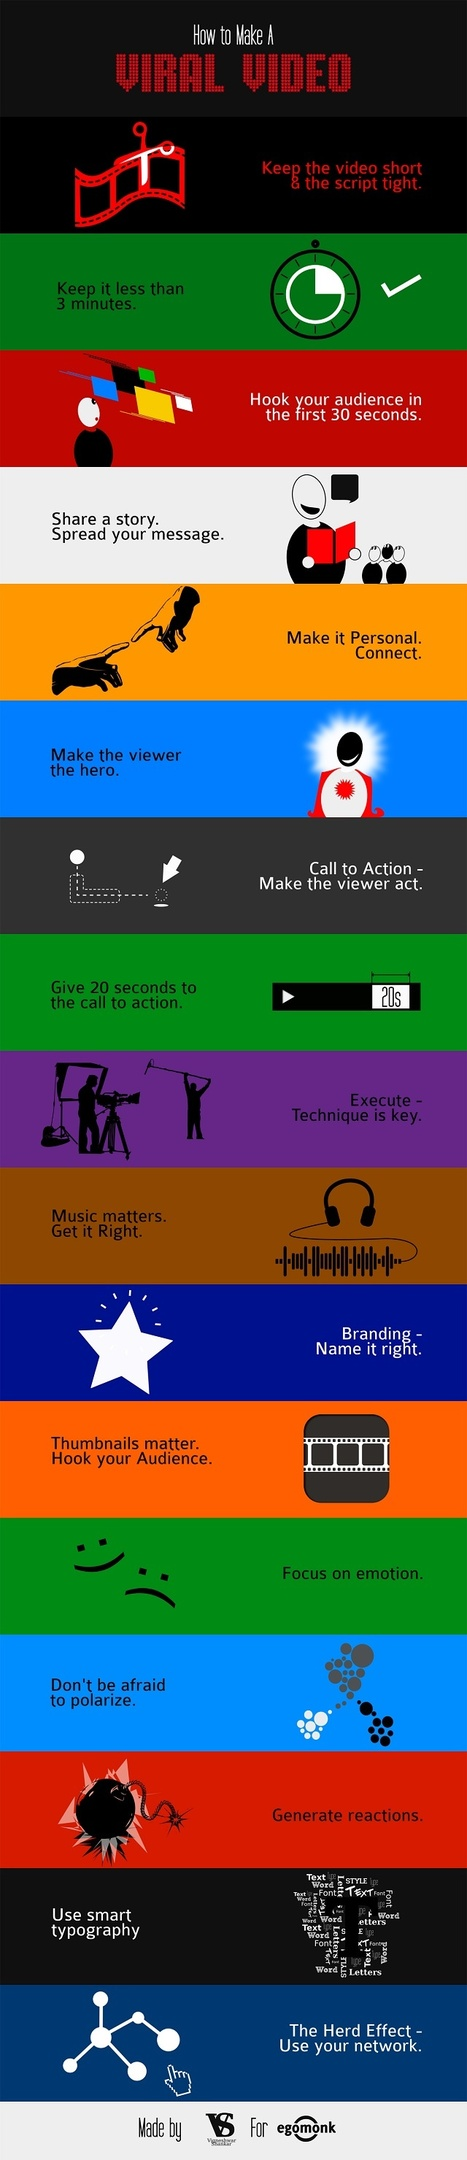 Infographic: How to Make a Viral Video | Internet Presence | Scoop.it